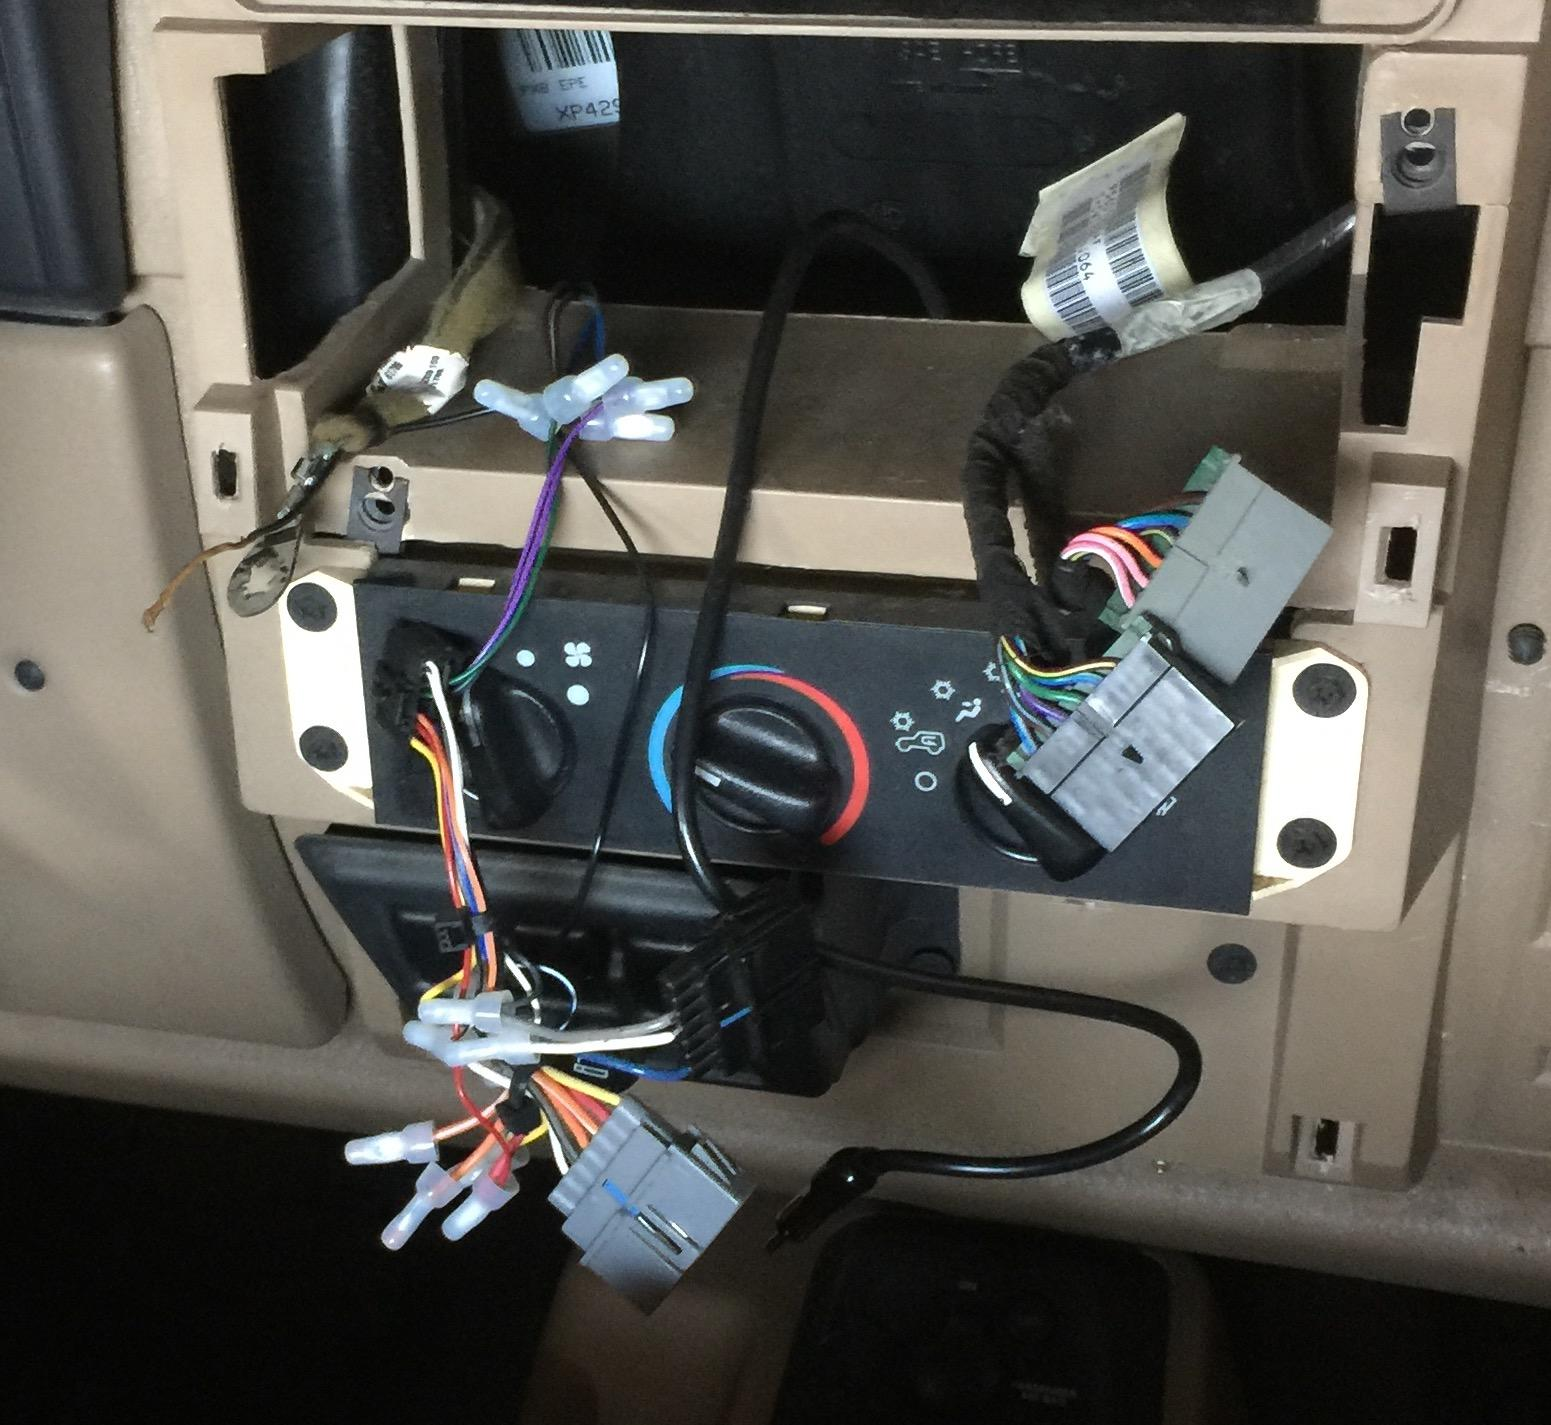 hight resolution of bad wiring job in a 99 wrangler trying to rectify and get it working